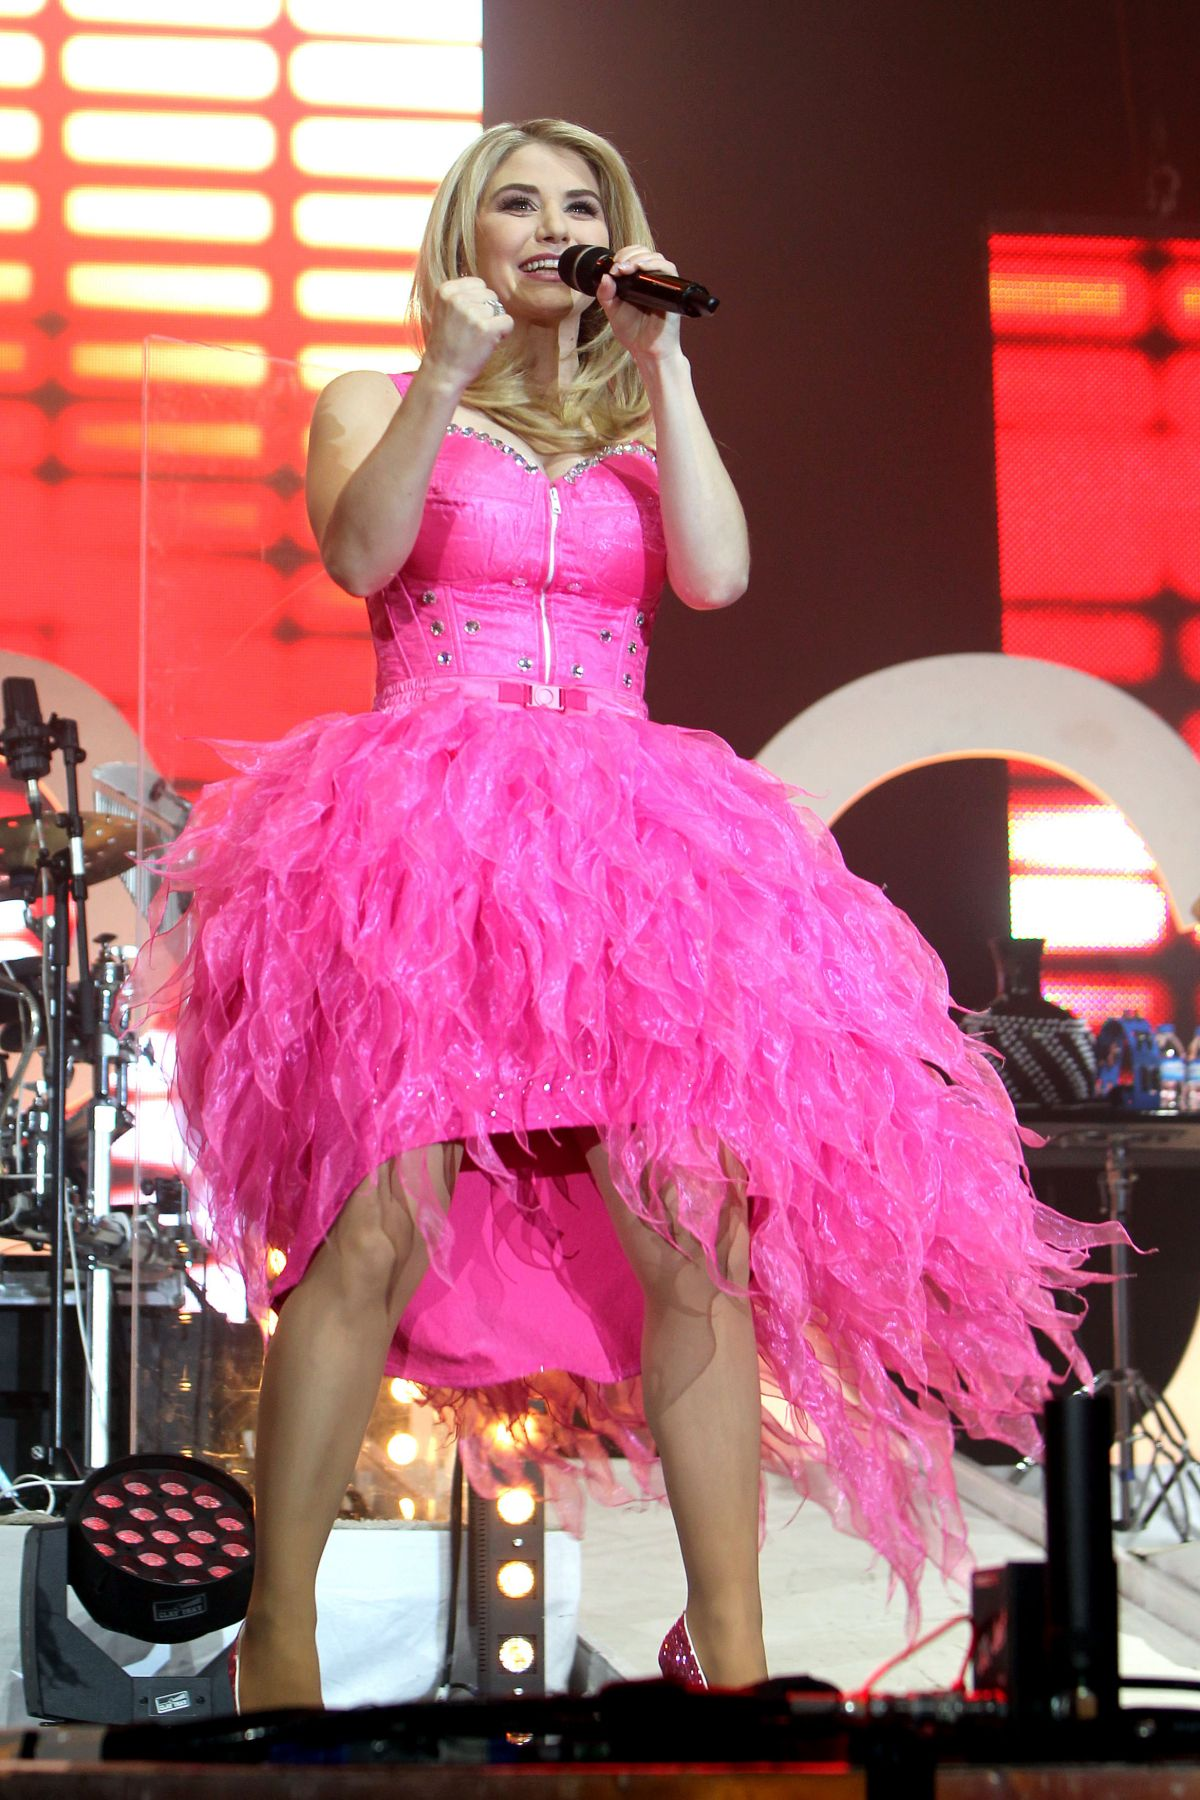 BEATRICE EGLI Performs at Pure Lebensfreude Tour in Leipzig